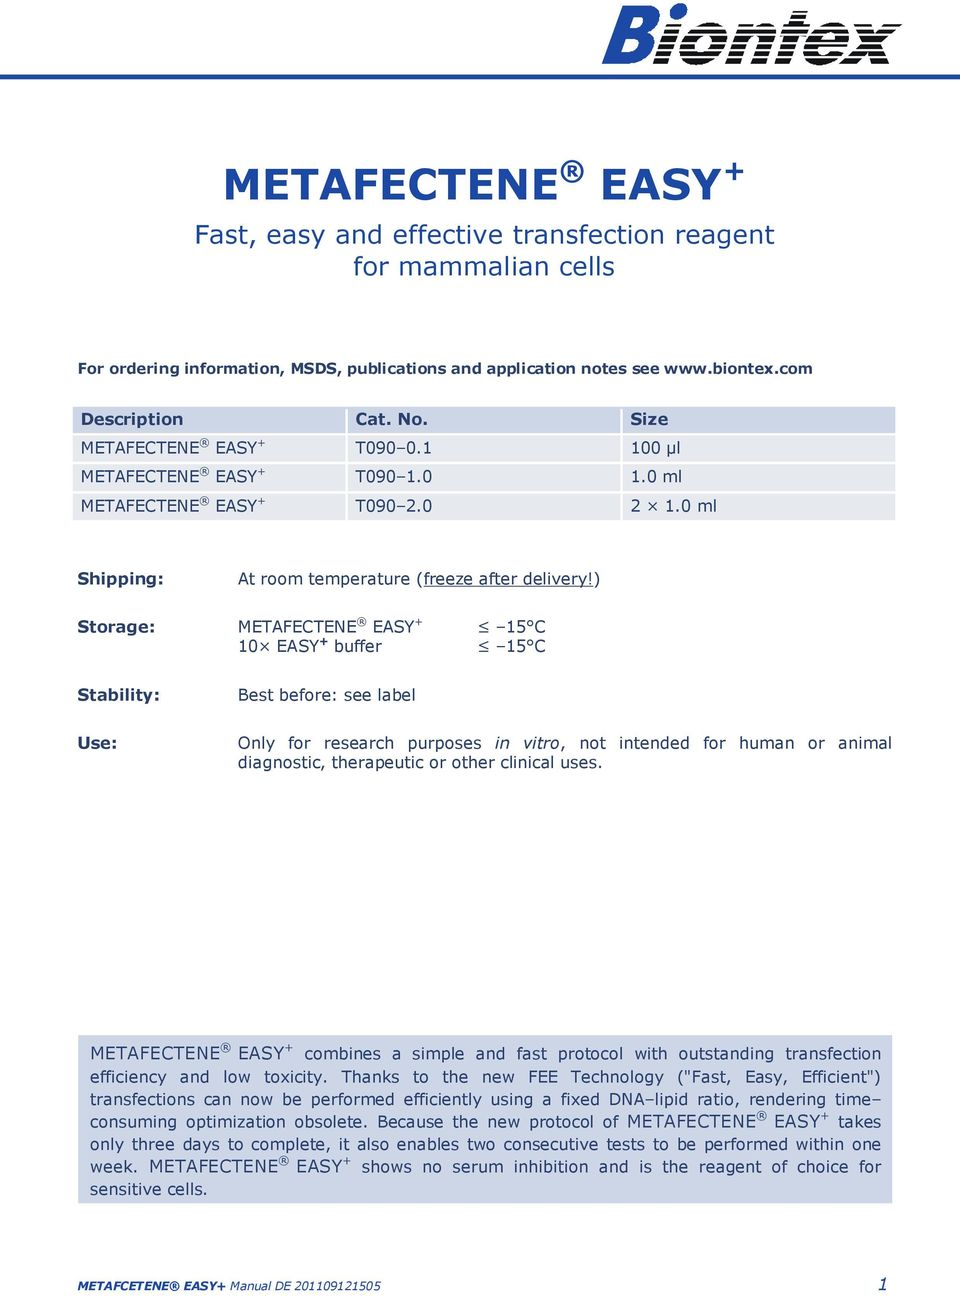 ) Storage: METAFECTENE EASY + 15 C 10 EASY + buffer 15 C Stability: Best before: see label Use: Only for research purposes in vitro, not intended for human or animal diagnostic, therapeutic or other